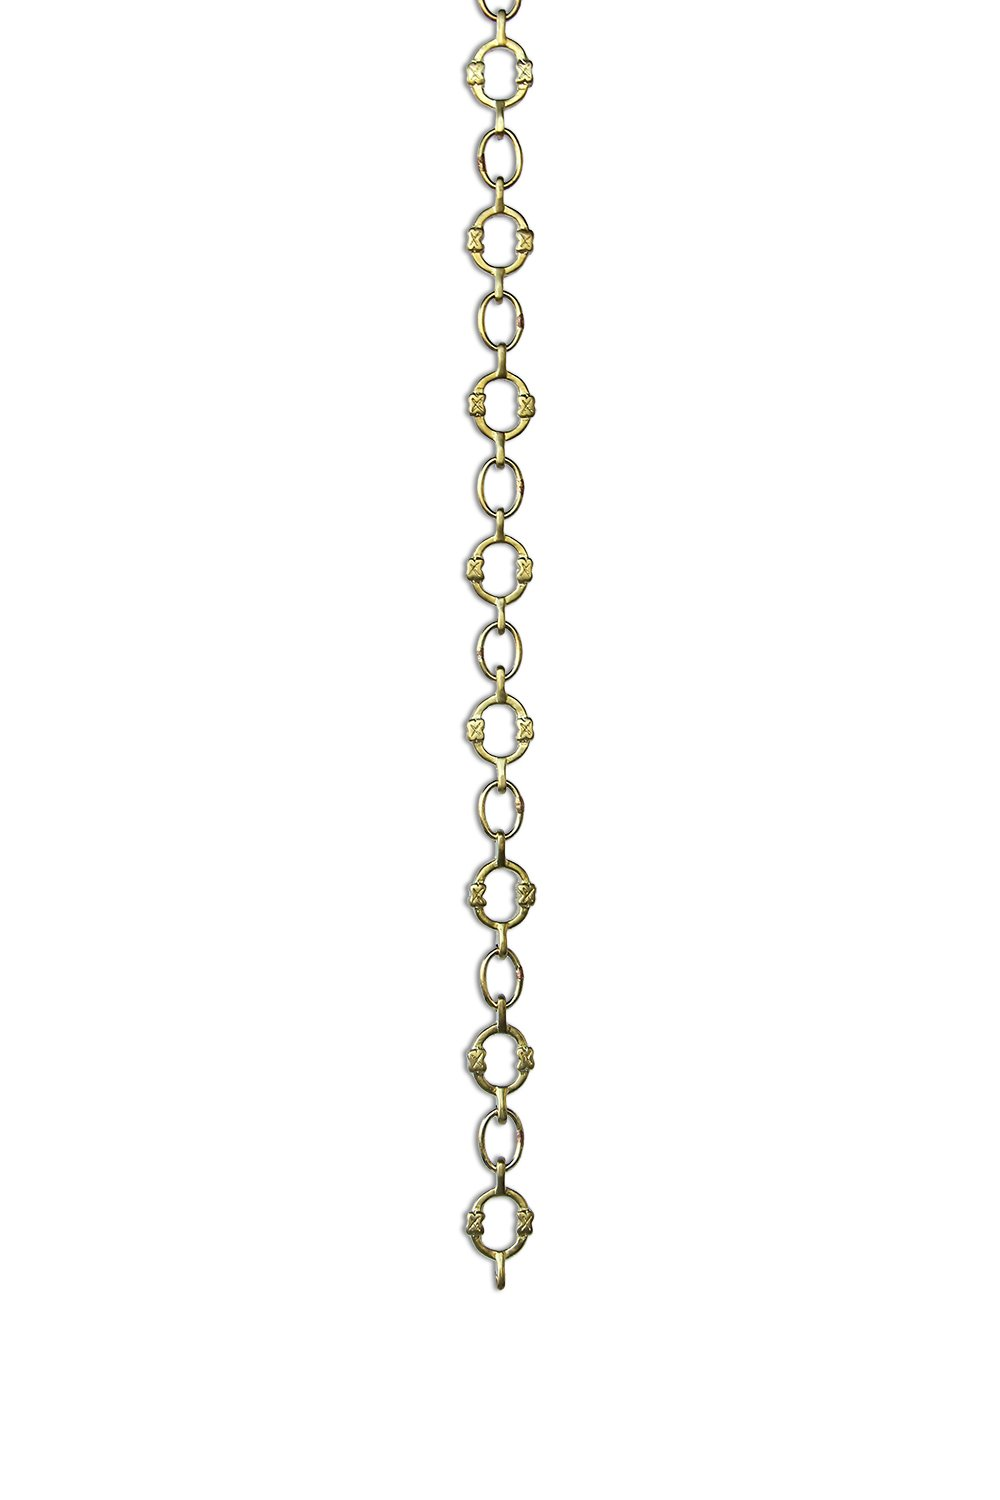 RCH Hardware CH-17-PB Decorative Polished Solid Brass Chain for Hanging, Lighting - Small Round Unwelded Links with X Design (1 Foot)